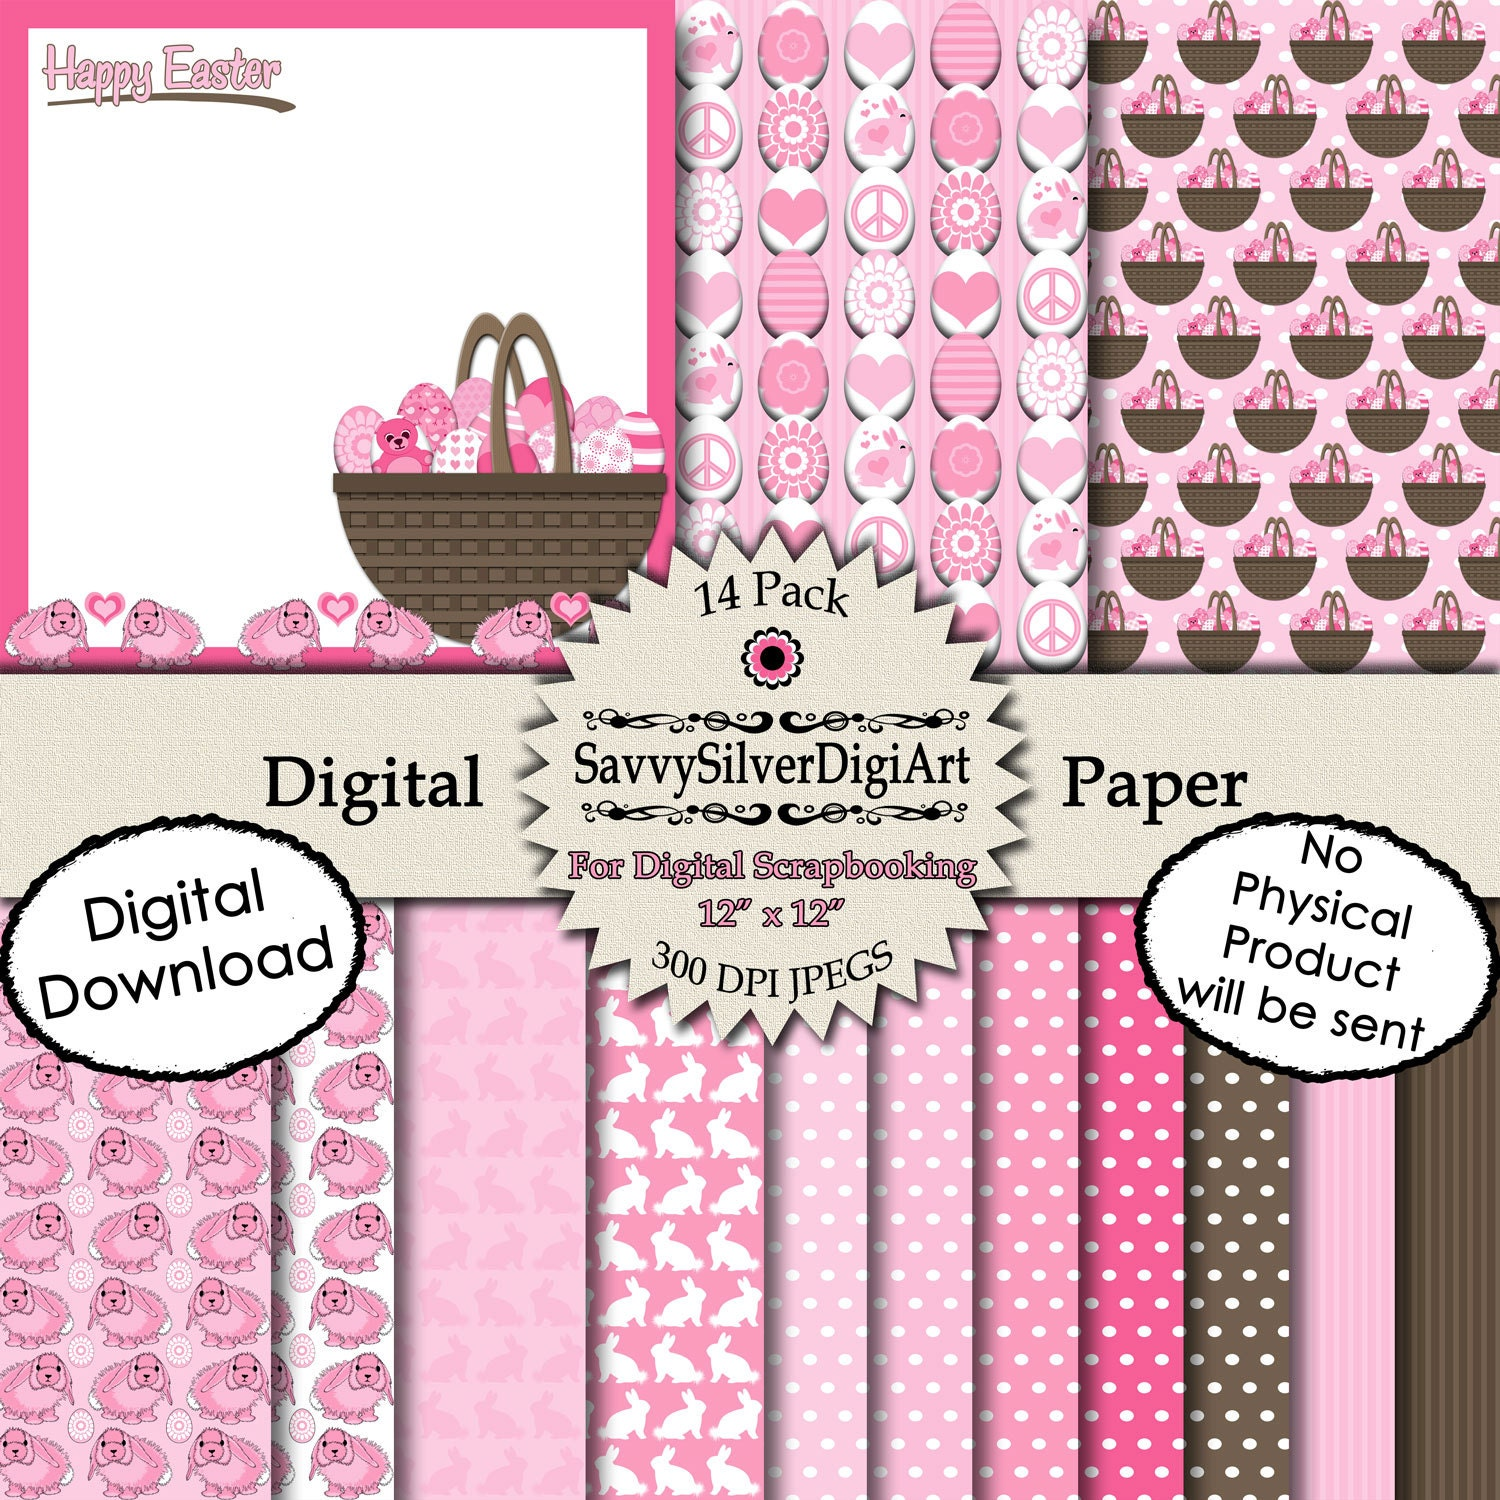 Scrapbook paper easter basket